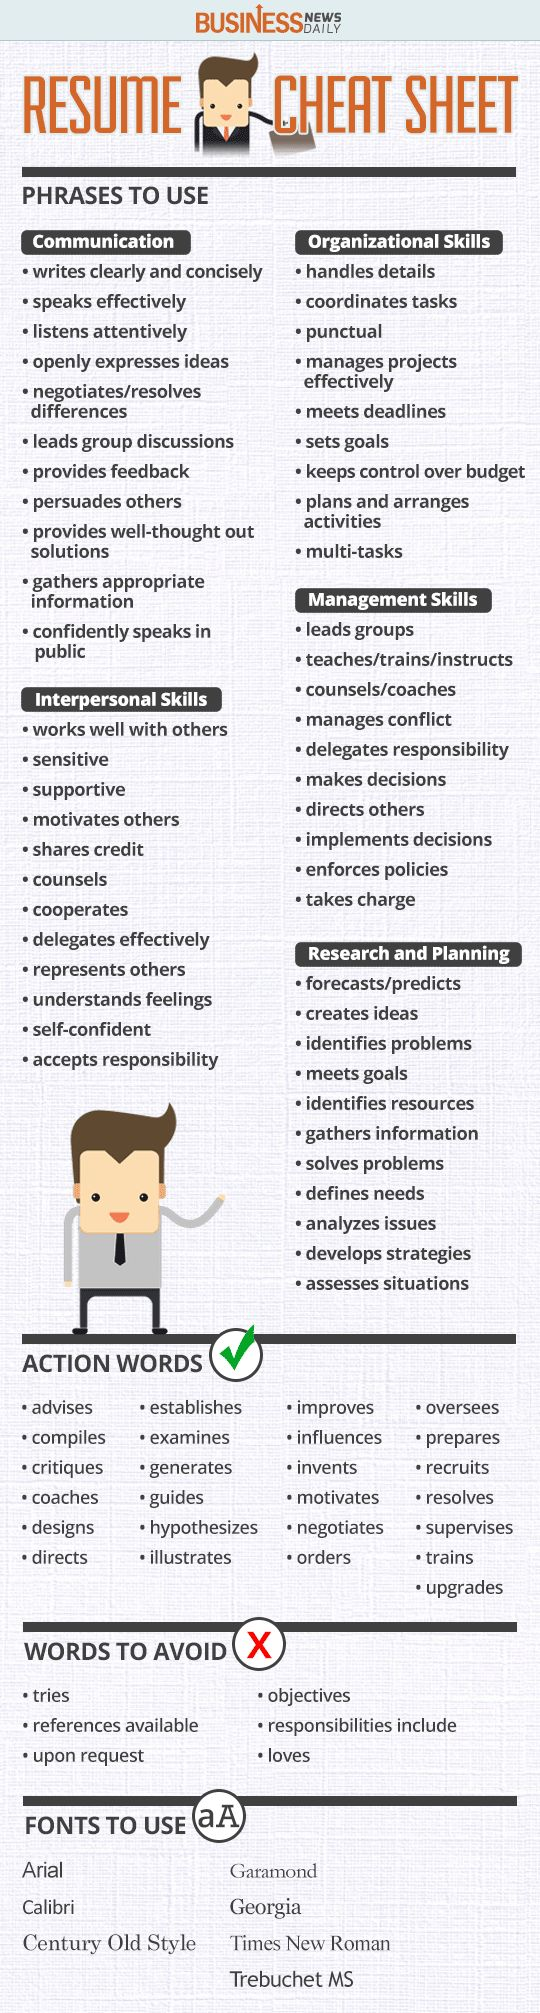 Opposenewapstandardsus  Splendid  Ideas About Resume On Pinterest  Cv Format Resume Cv And  With Glamorous Resume Cheat Sheet Infographic Andrews Almost Done With A Complete Unit On Employment Which With Agreeable Word Doc Resume Template Also Food And Beverage Manager Resume In Addition Mba Resumes And Resume Class As Well As Professional Resume Writing Service Reviews Additionally Resume Portfolio Examples From Pinterestcom With Opposenewapstandardsus  Glamorous  Ideas About Resume On Pinterest  Cv Format Resume Cv And  With Agreeable Resume Cheat Sheet Infographic Andrews Almost Done With A Complete Unit On Employment Which And Splendid Word Doc Resume Template Also Food And Beverage Manager Resume In Addition Mba Resumes From Pinterestcom